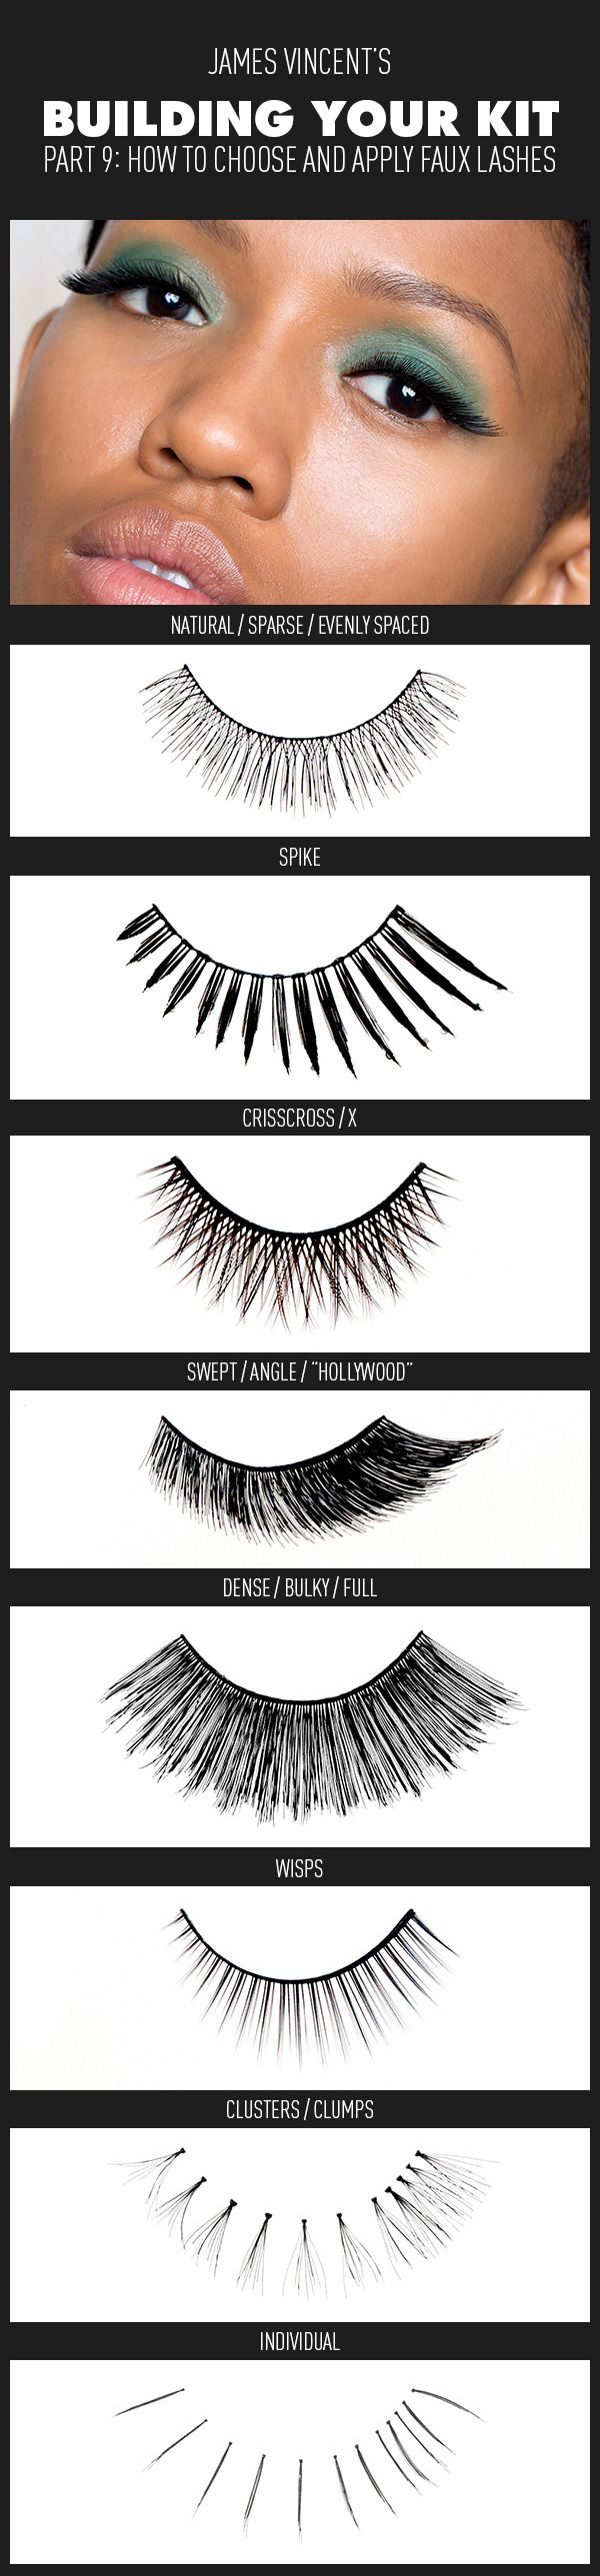 My latest piece is up on Beautylish. Check it out and let me know what you think. Building Your Kit Part 9: How to Choose and Apply Faux Lashes